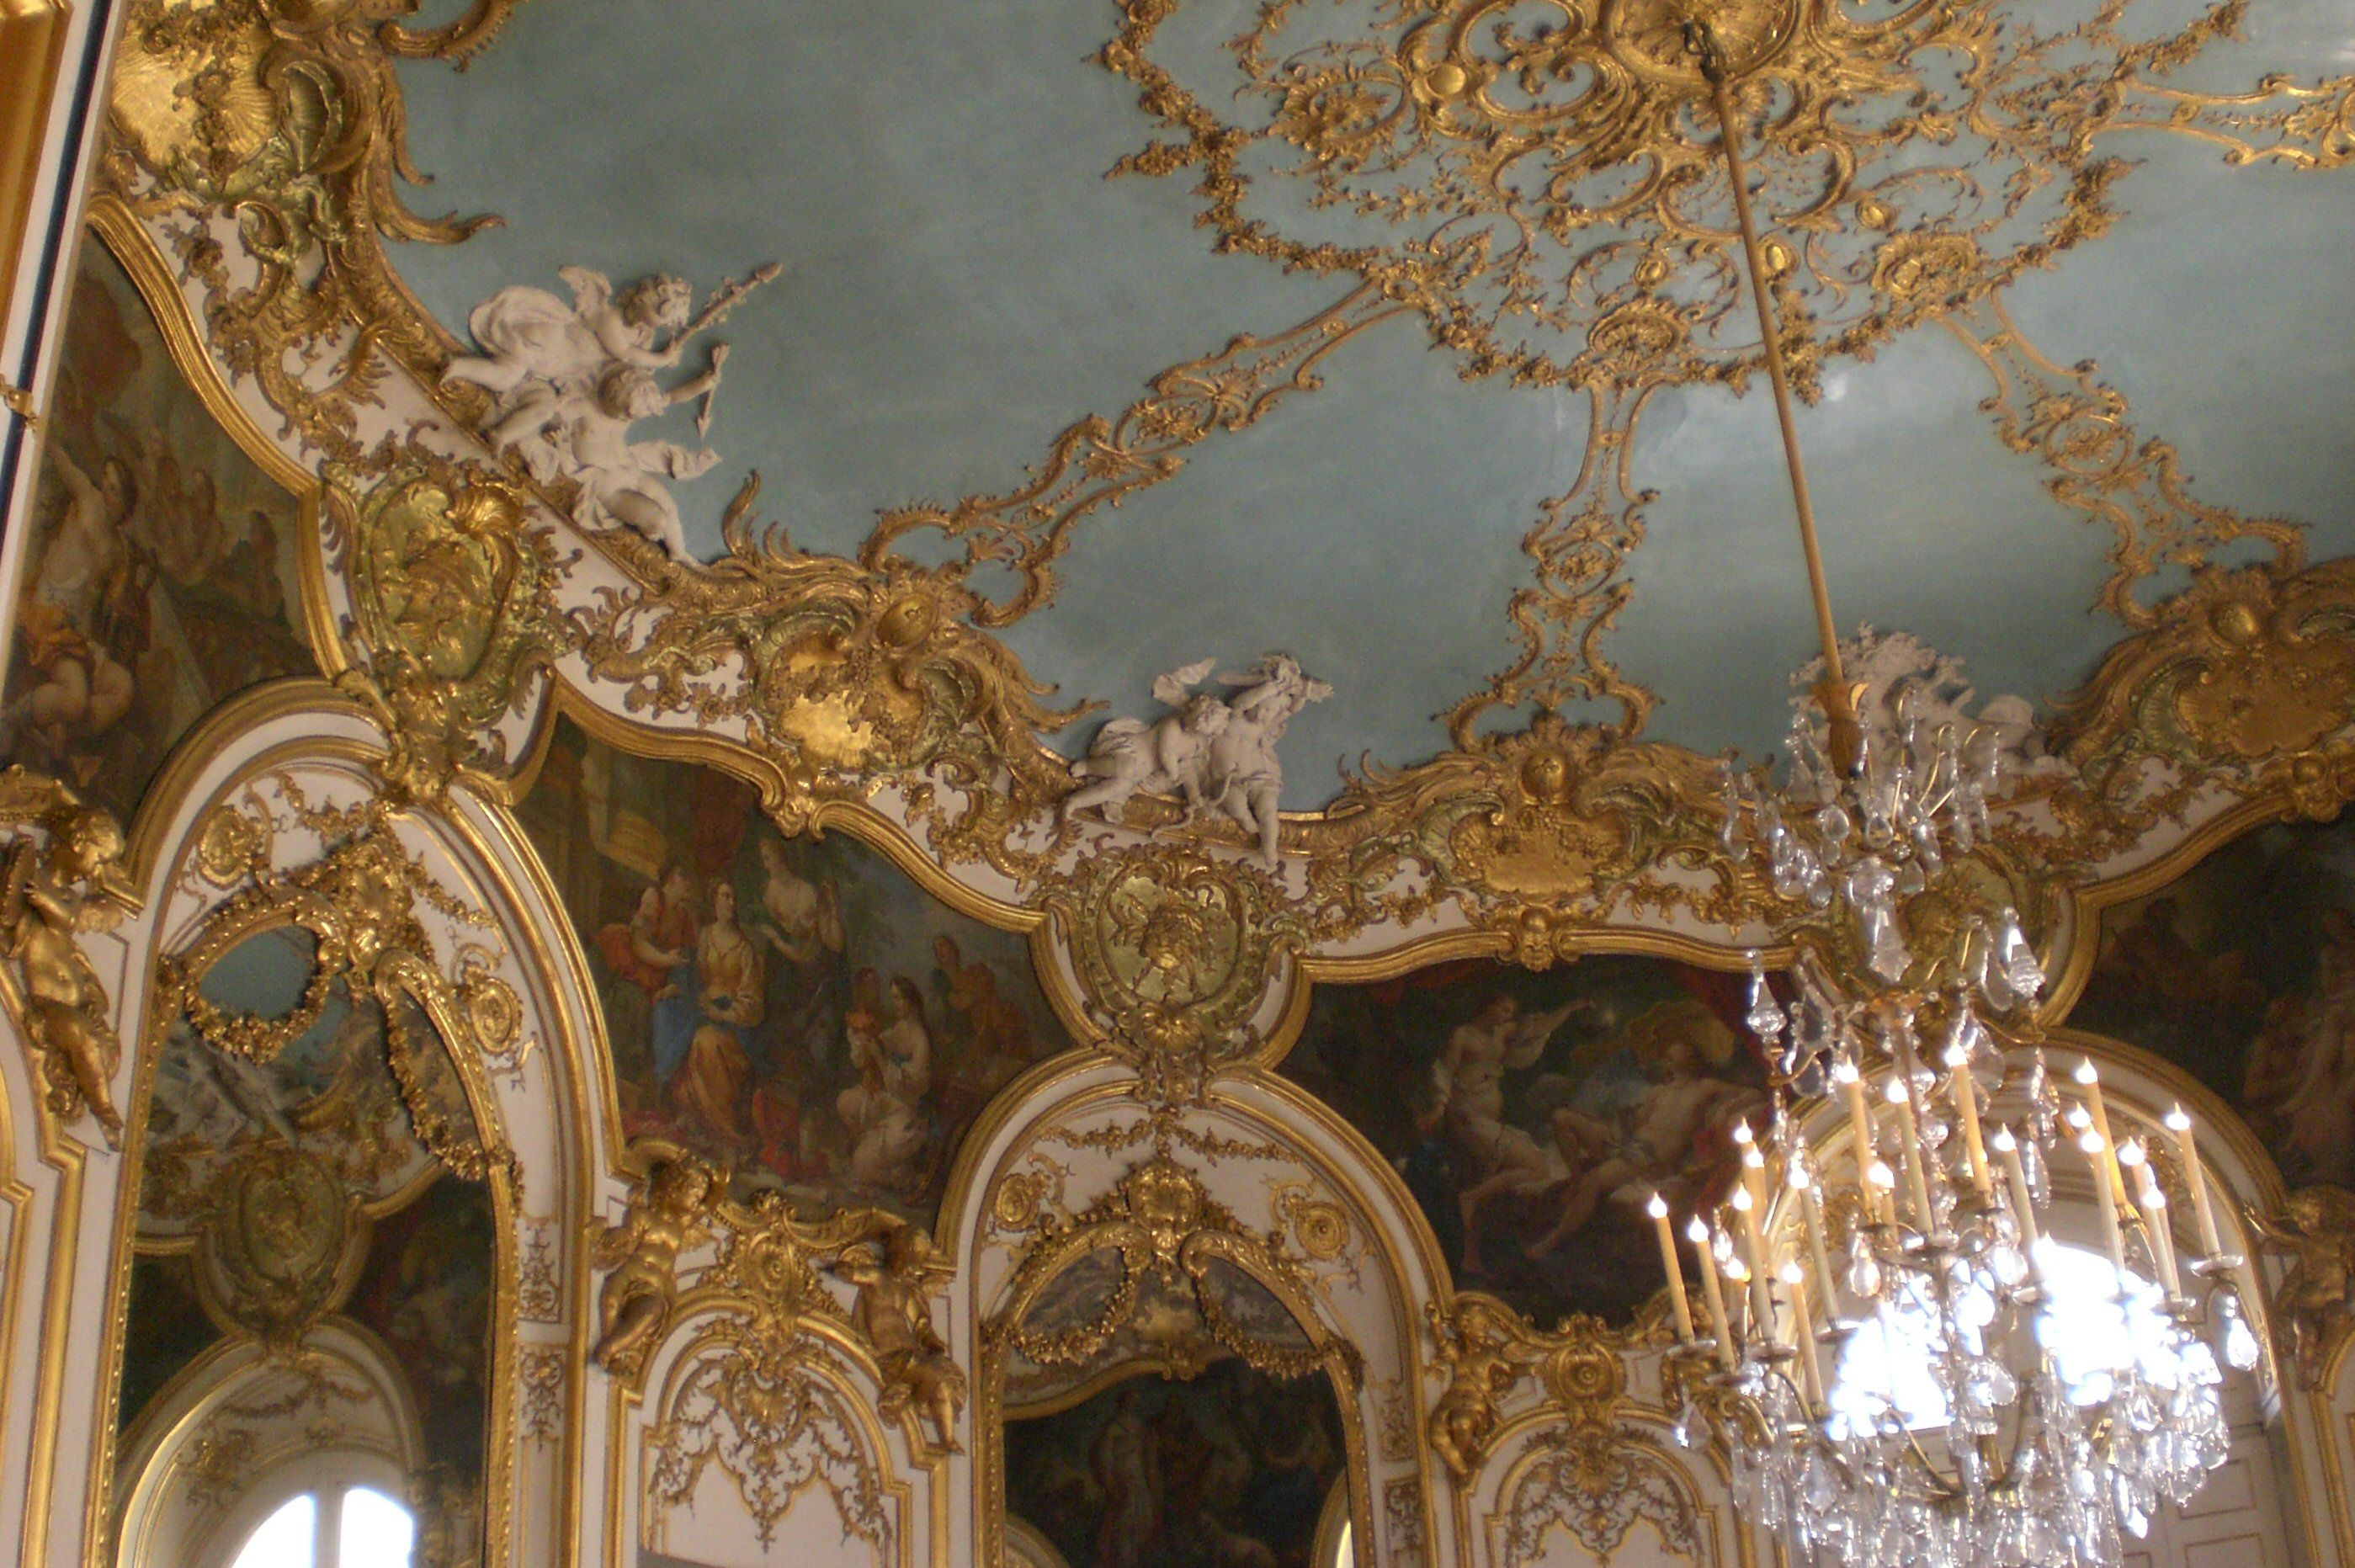 The Rococo A Beginner s Guide to Art and Architecture